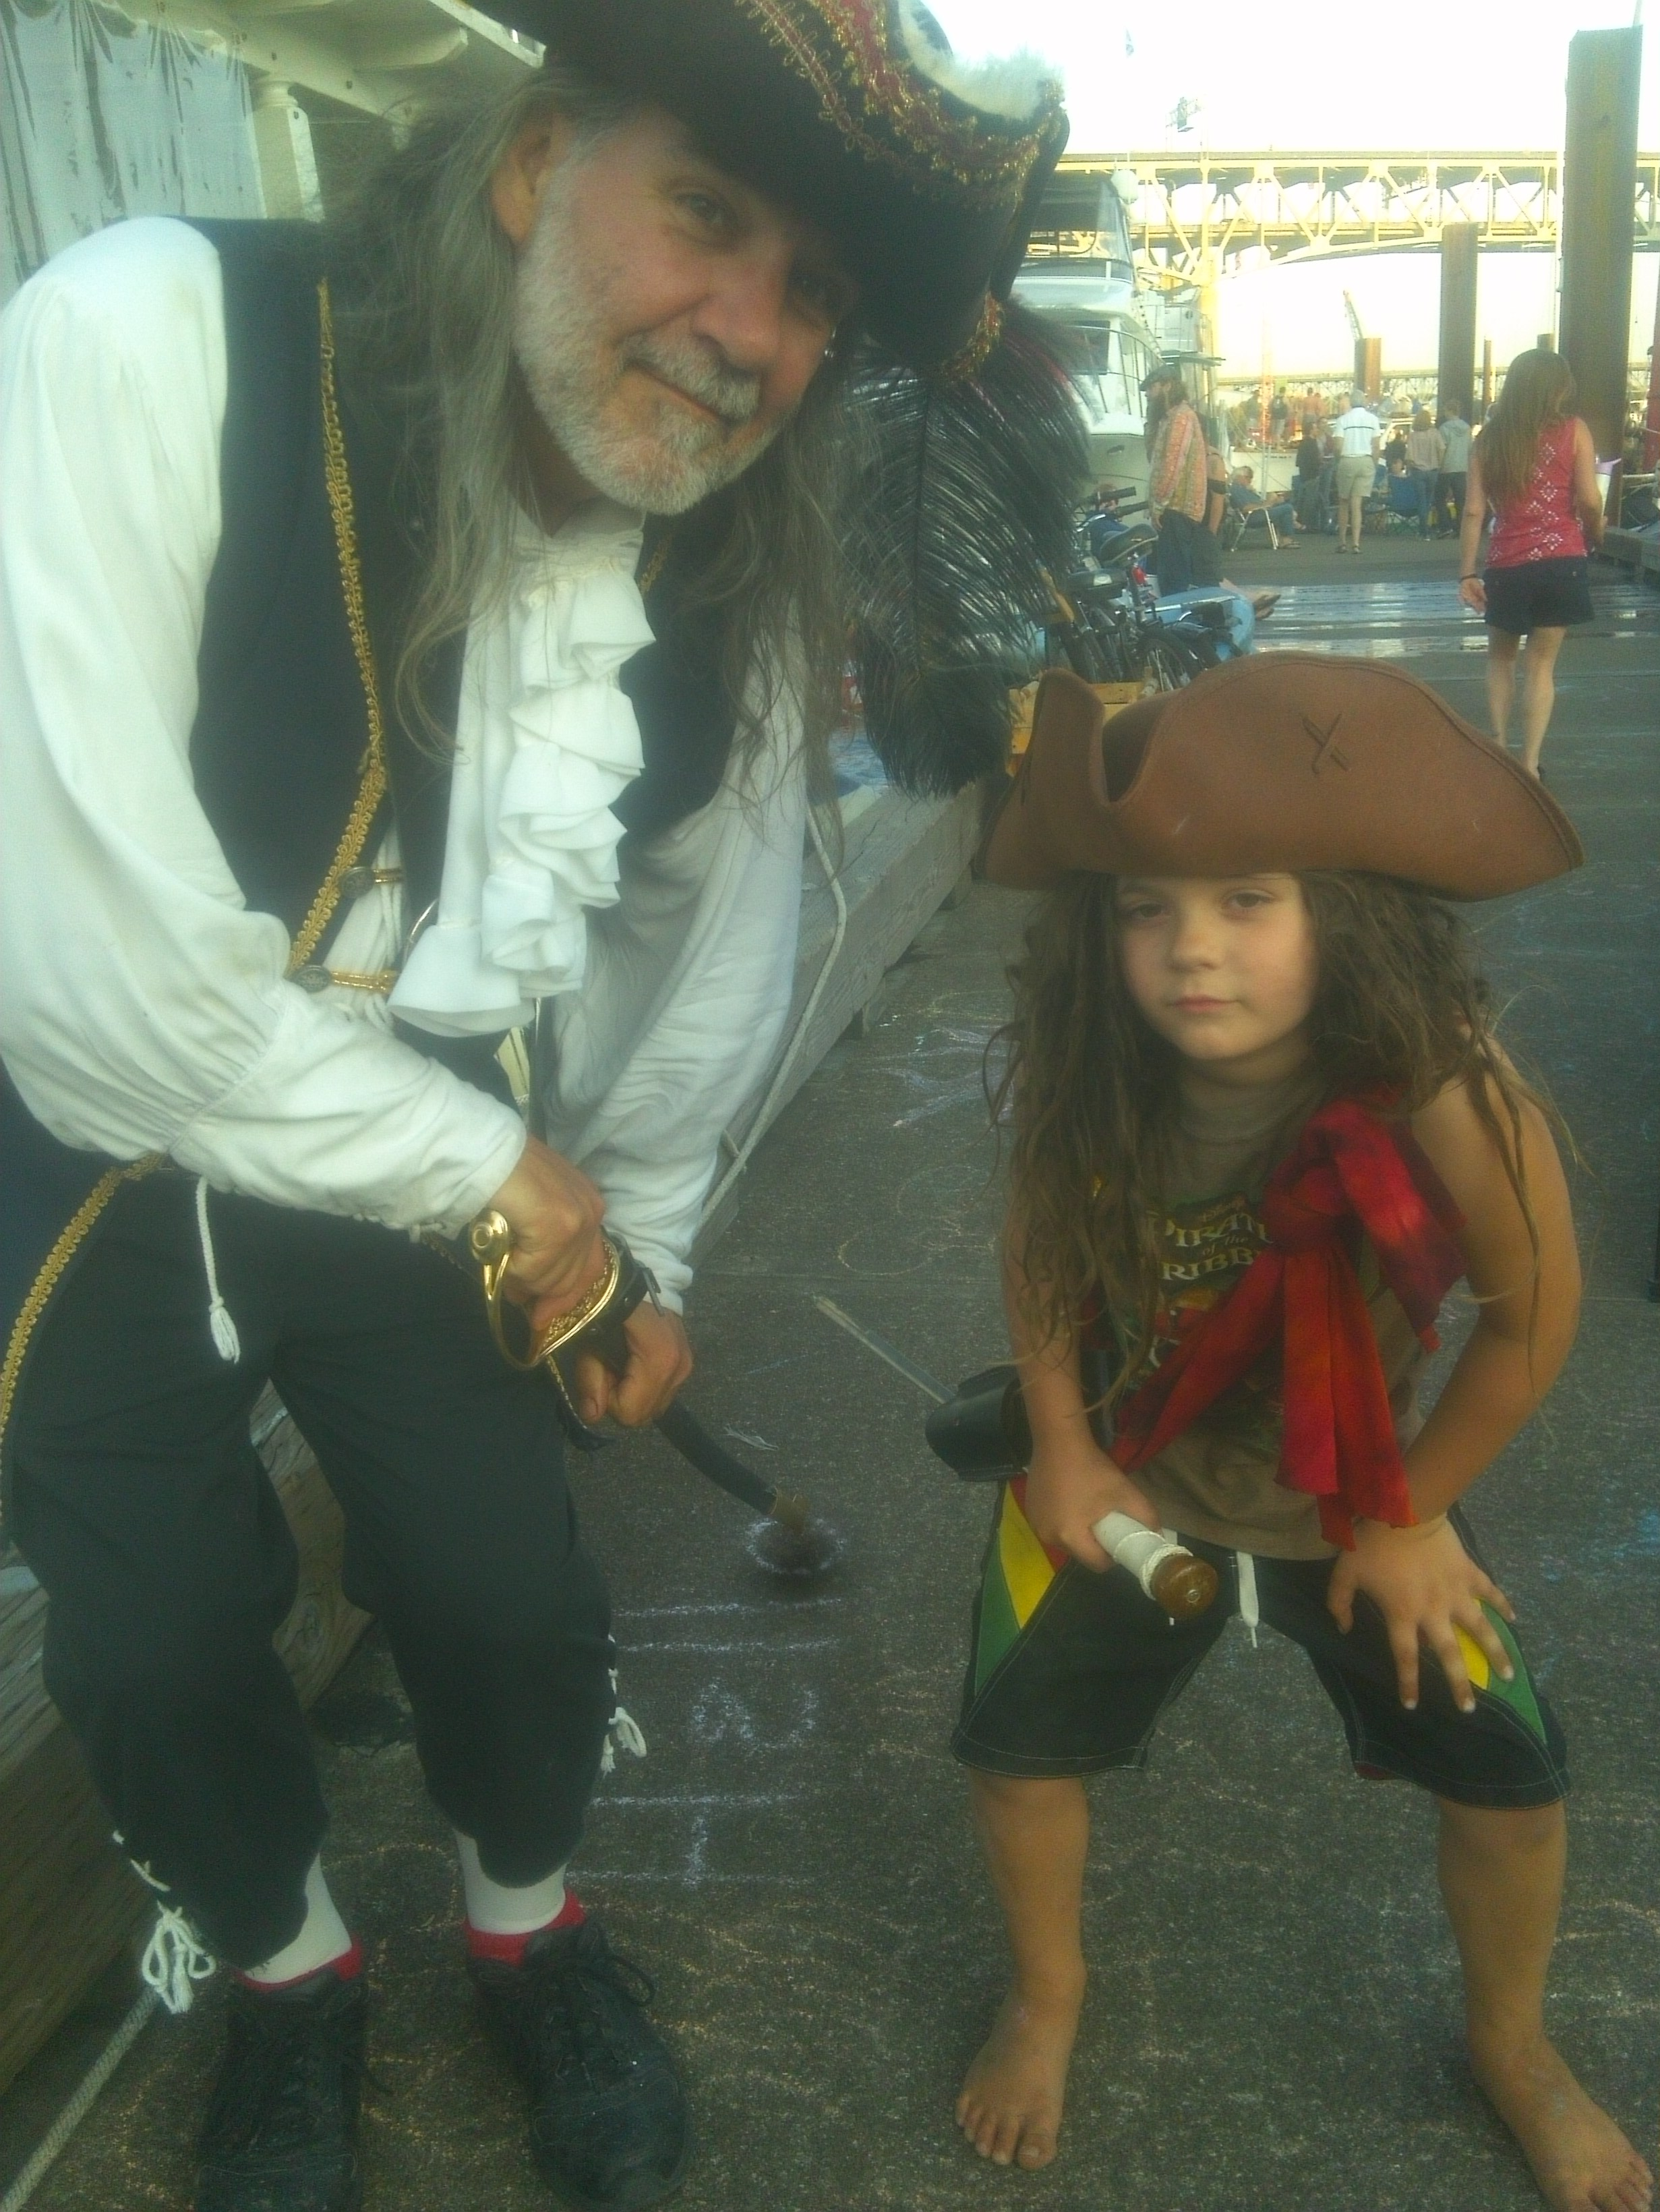 Pirate dad and son